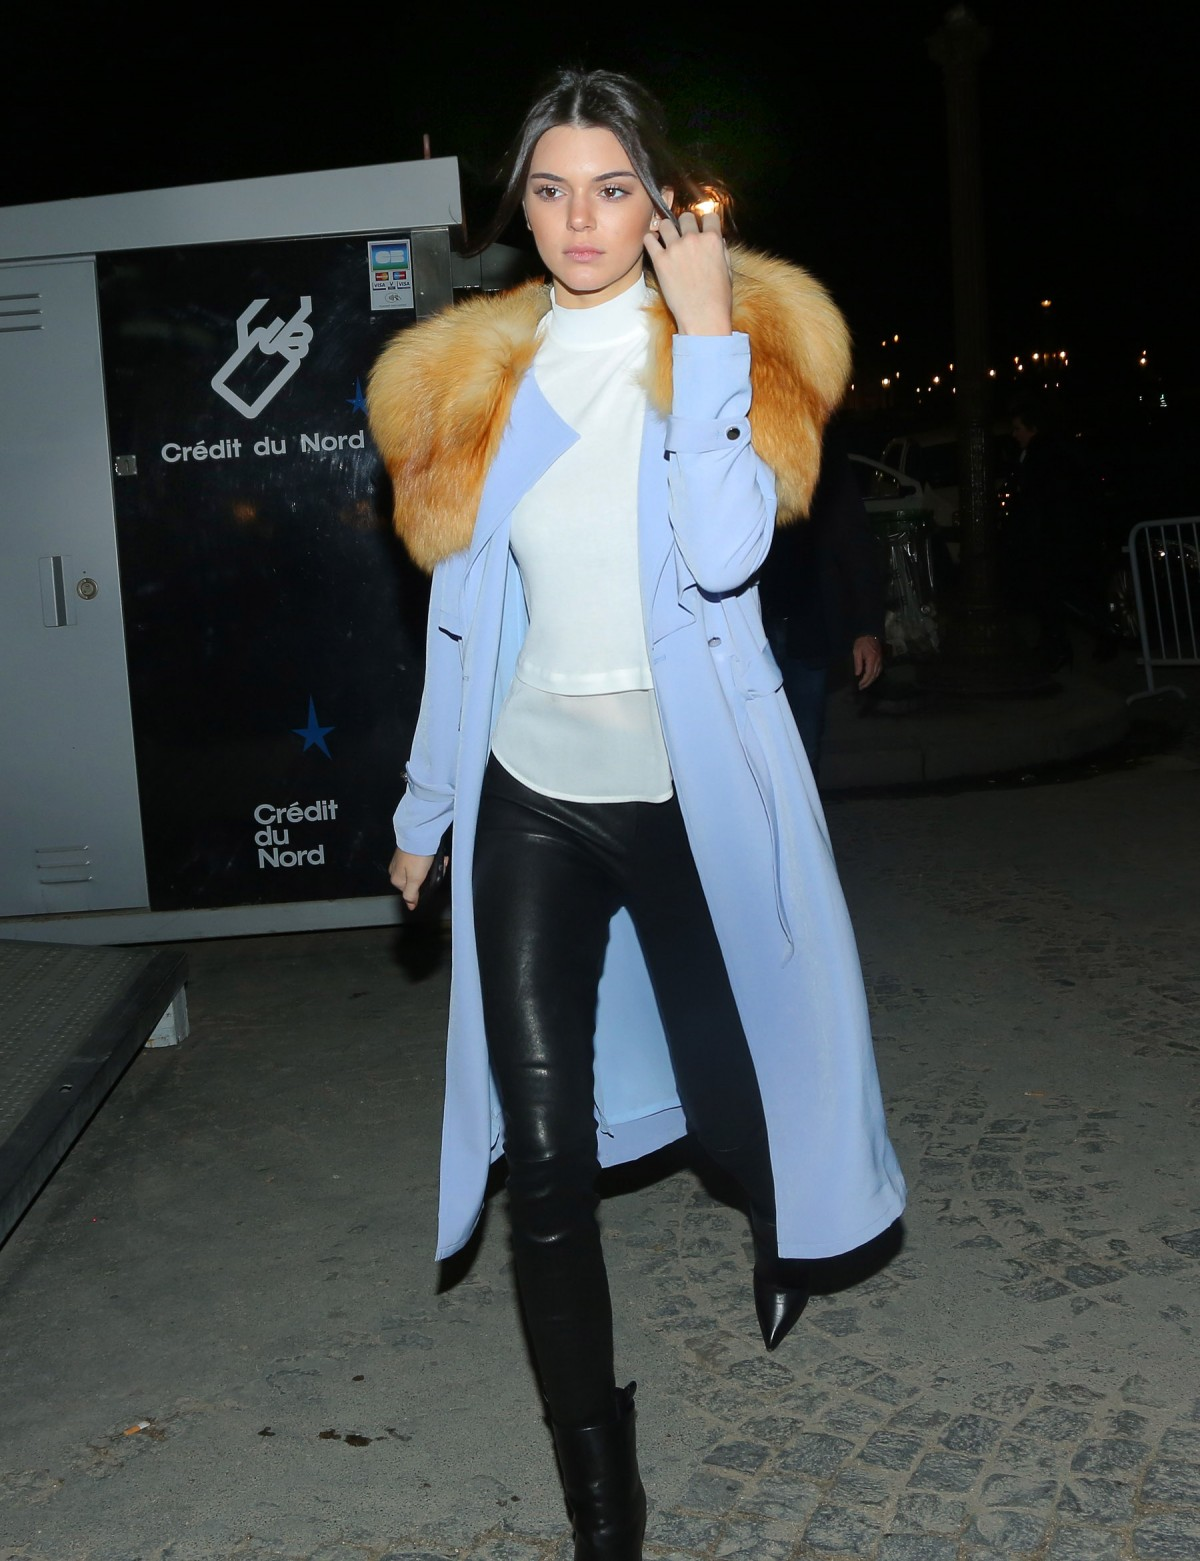 Kendall Jenner shows off her fashion style on a cold night in Paris at the Ferris Wheel